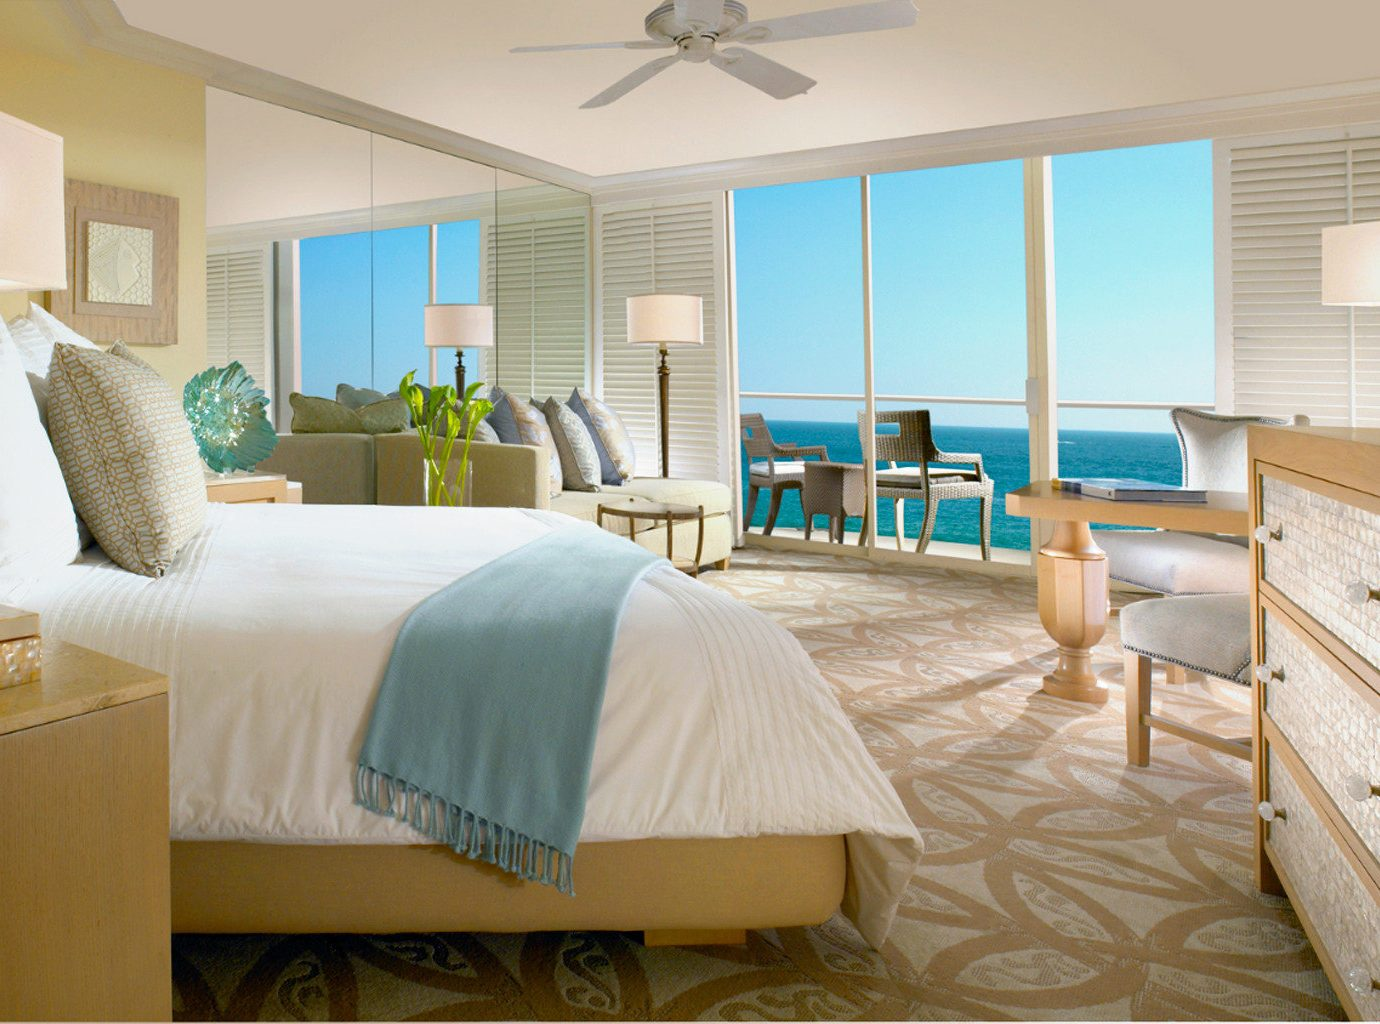 Balcony Beachfront Bedroom Elegant Hotels Modern Ocean Scenic views Waterfront property Suite home cottage living room condominium Villa